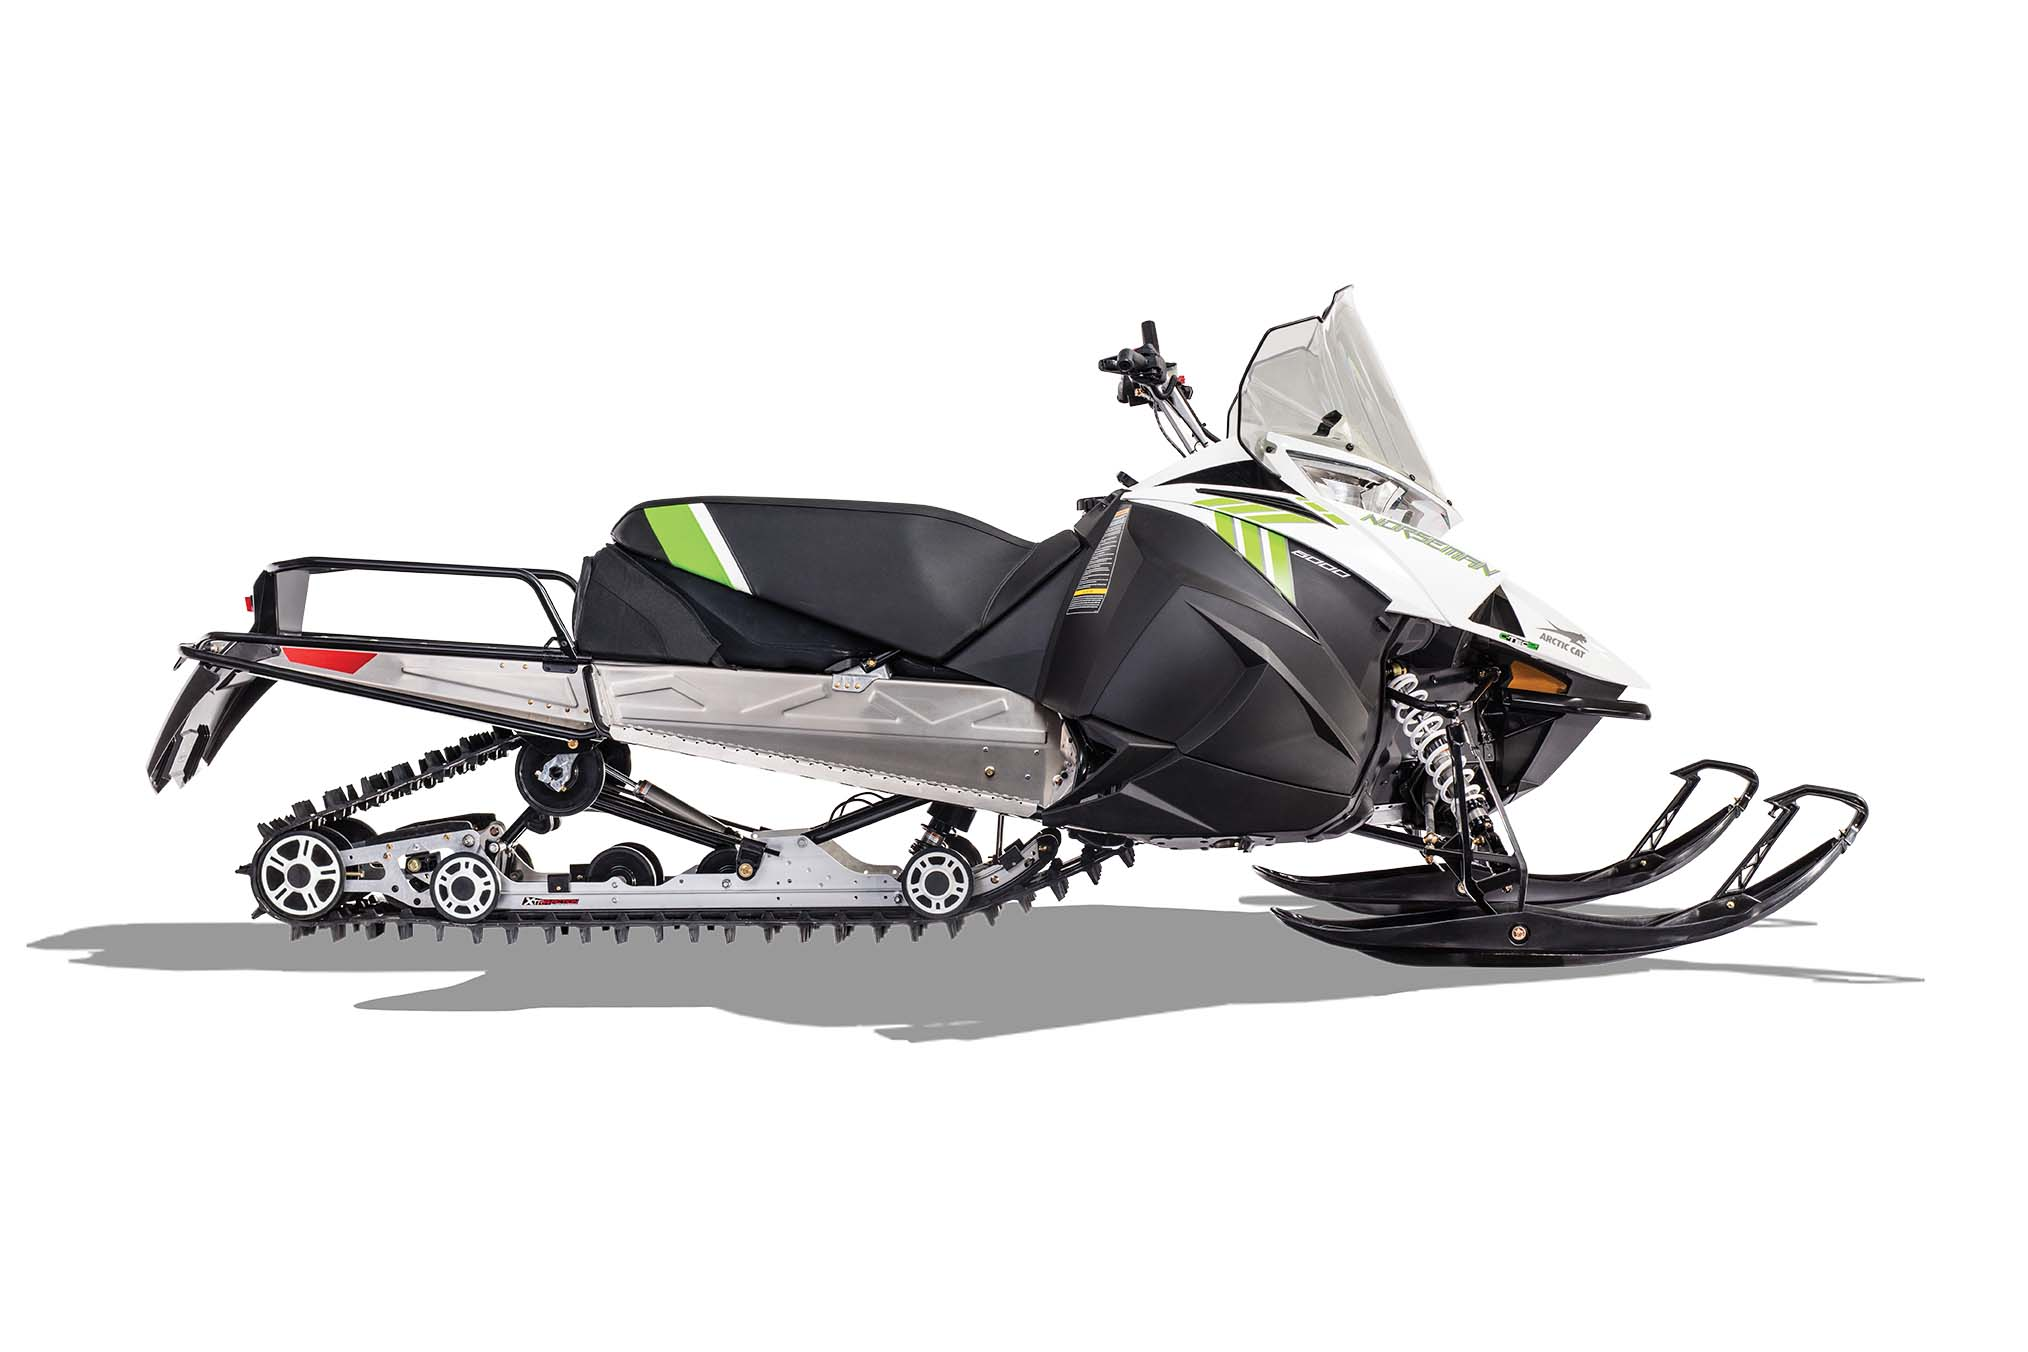 8 things to know about the new 2018 Arctic Cats - MaxSled